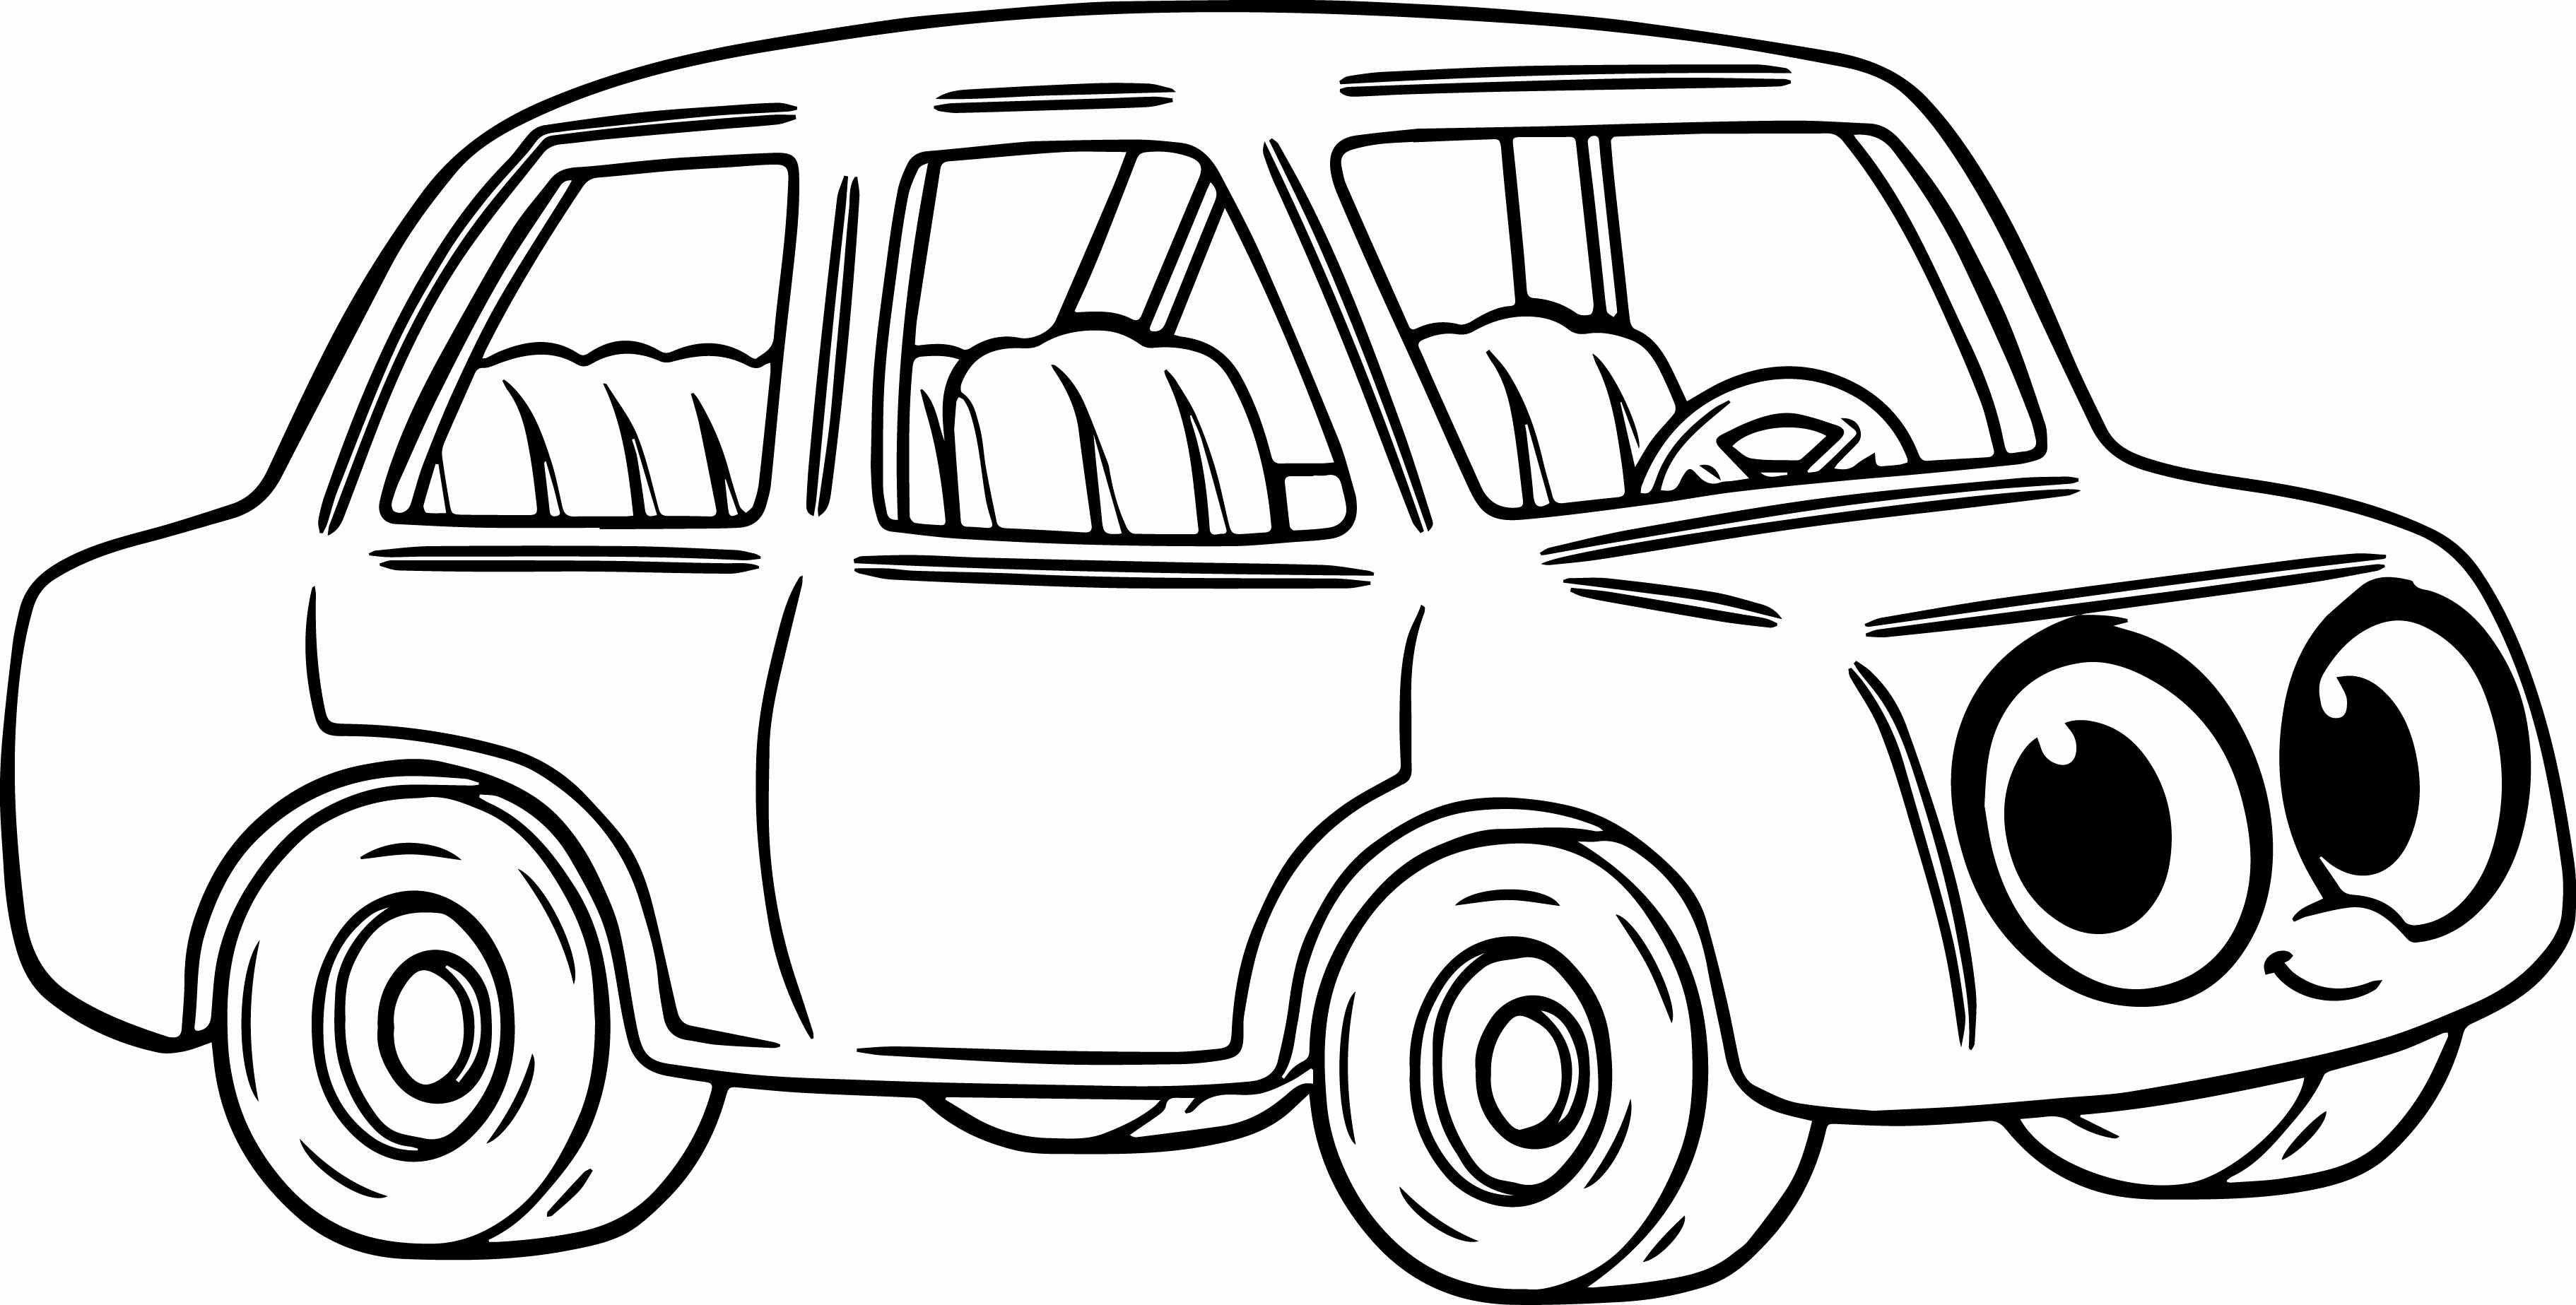 picture of a car to color cars coloring pages for kids printable free coloing car color of a to picture